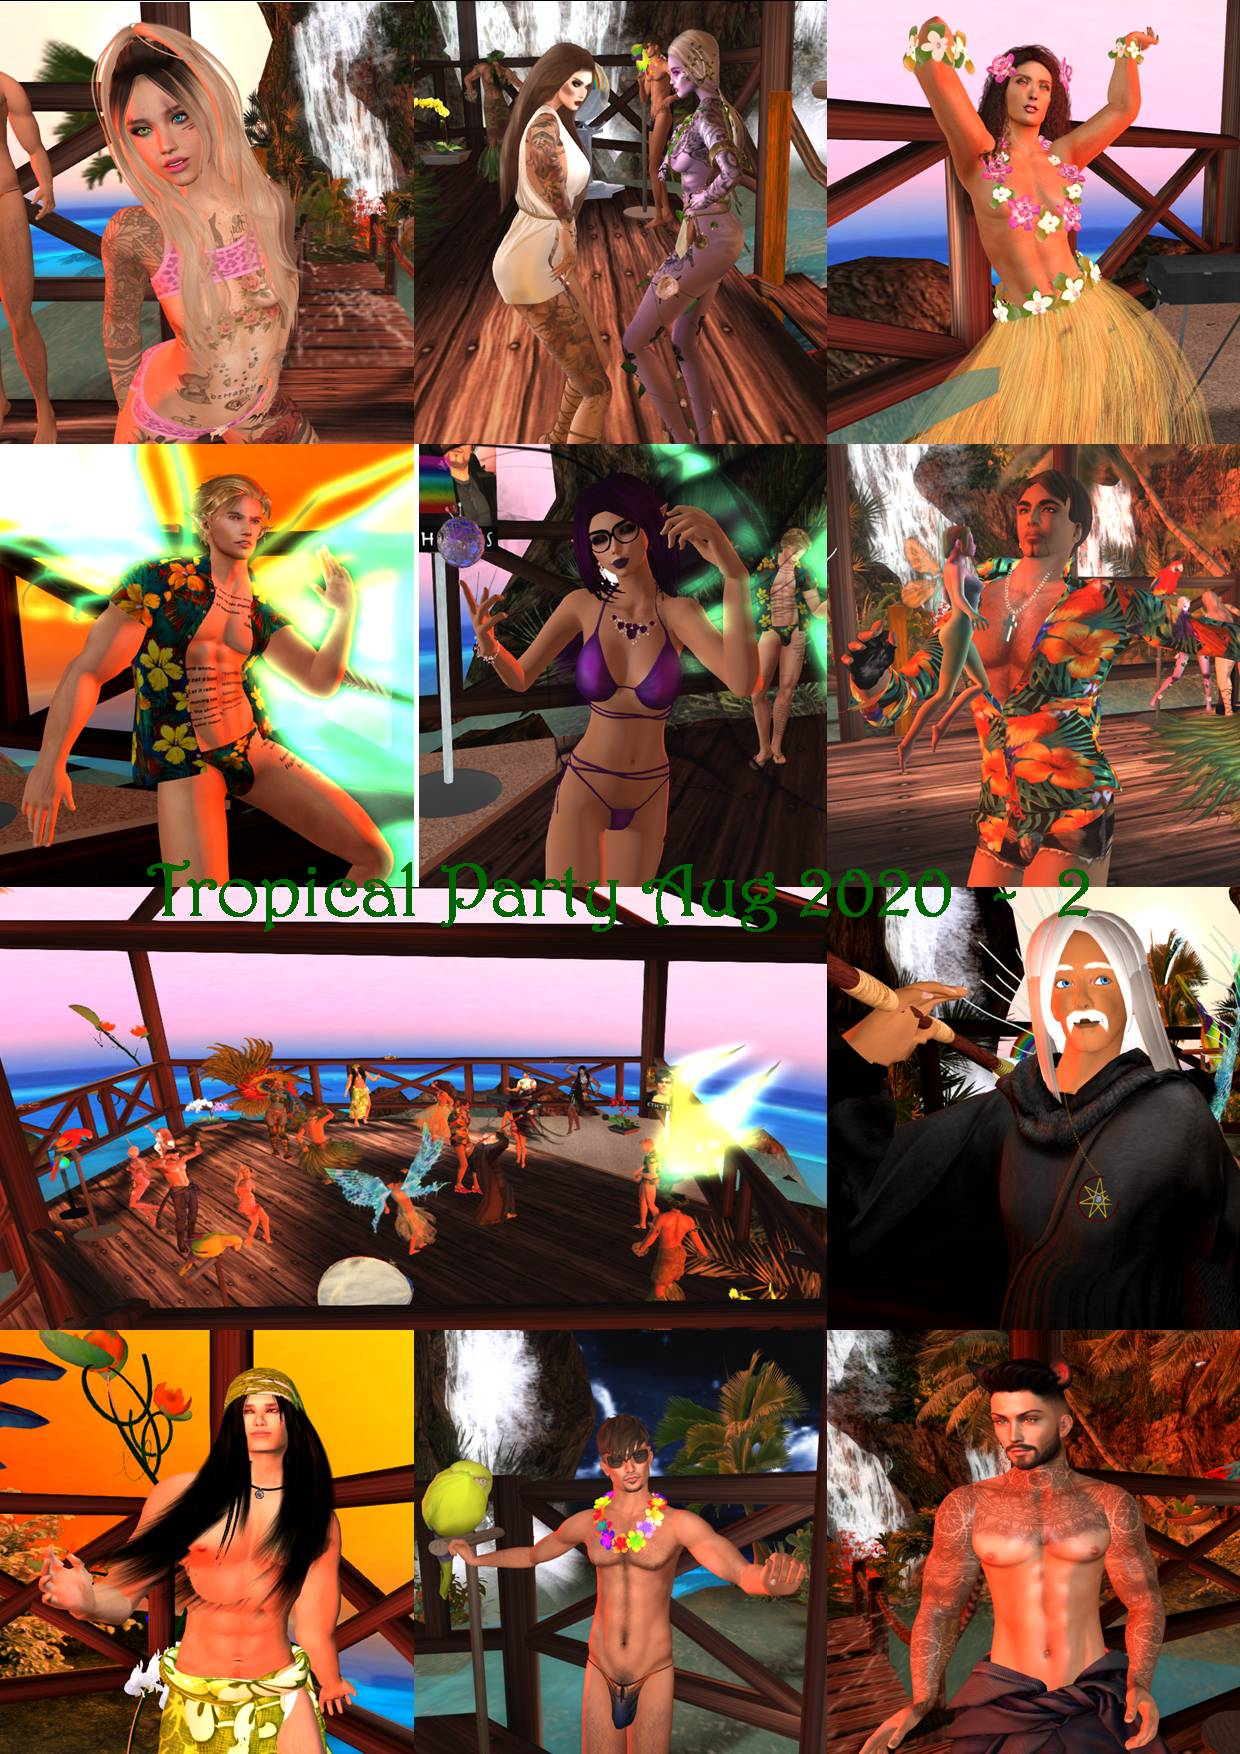 TROPICAL PARTY COLLAGE AUG 2020 - 2